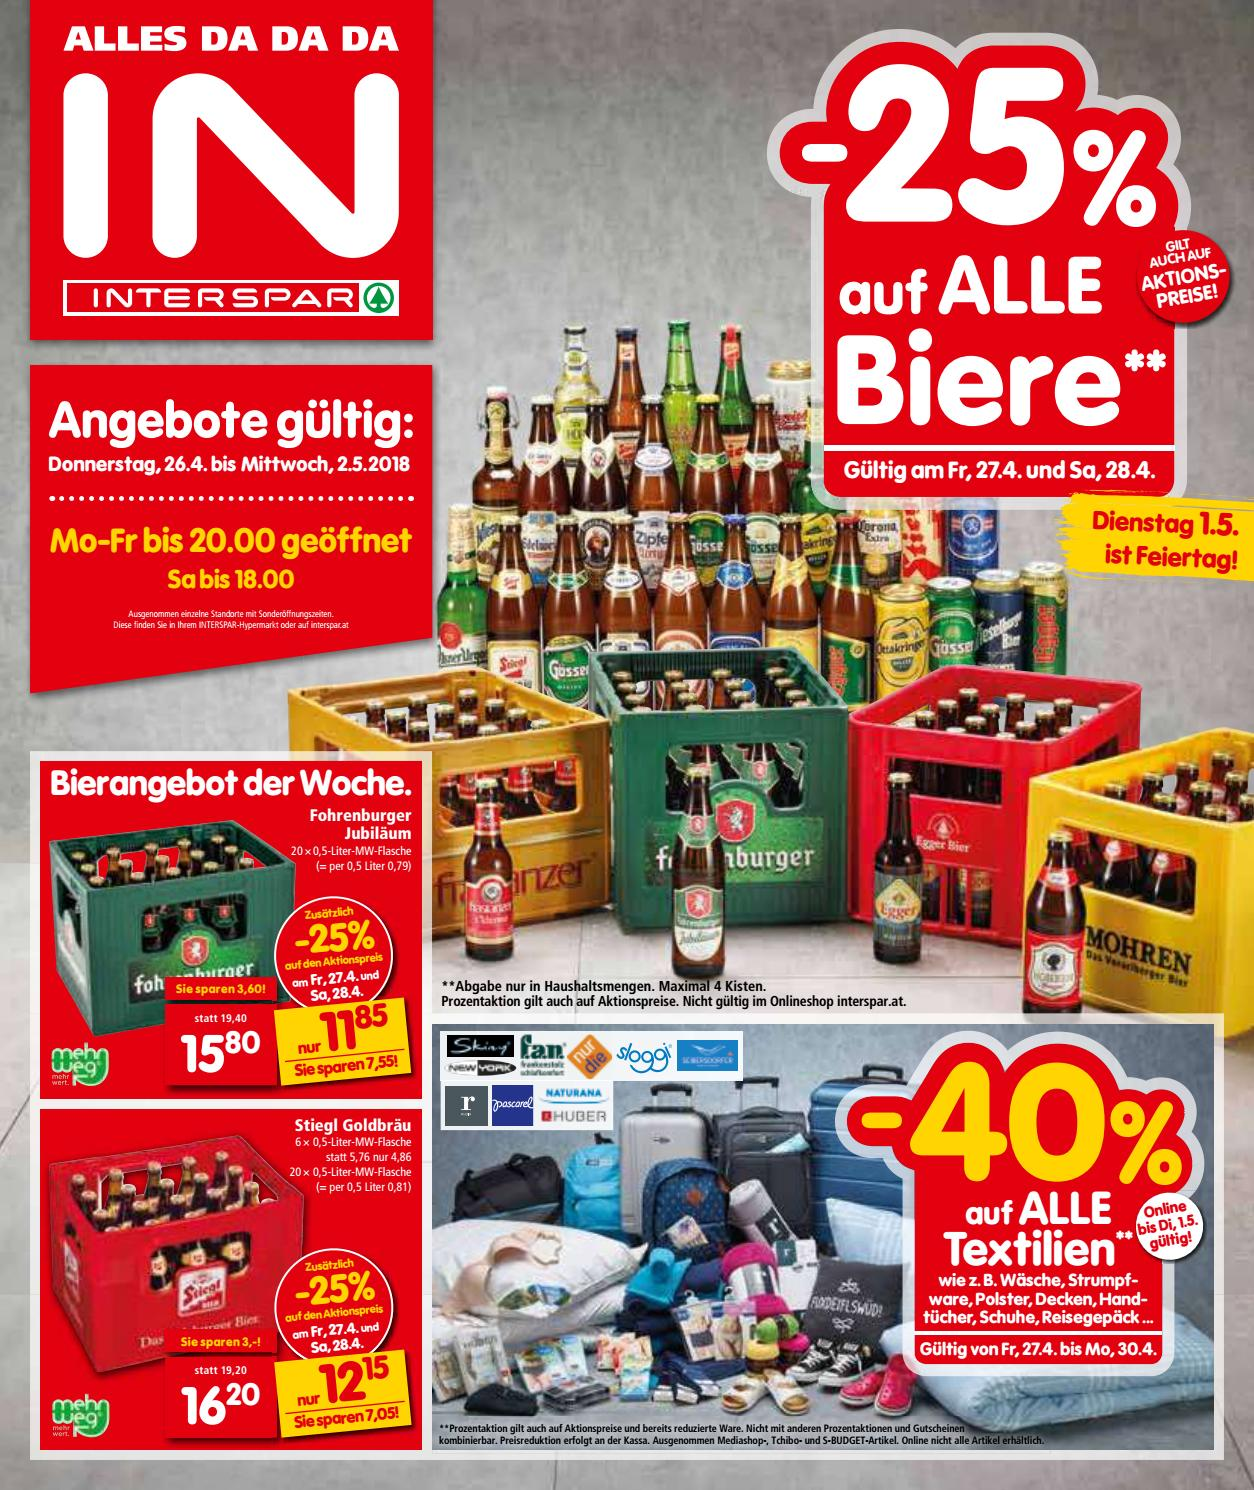 Sonnenliege Interspar Interspar Kw17 By Russmedia Digital Gmbh Issuu